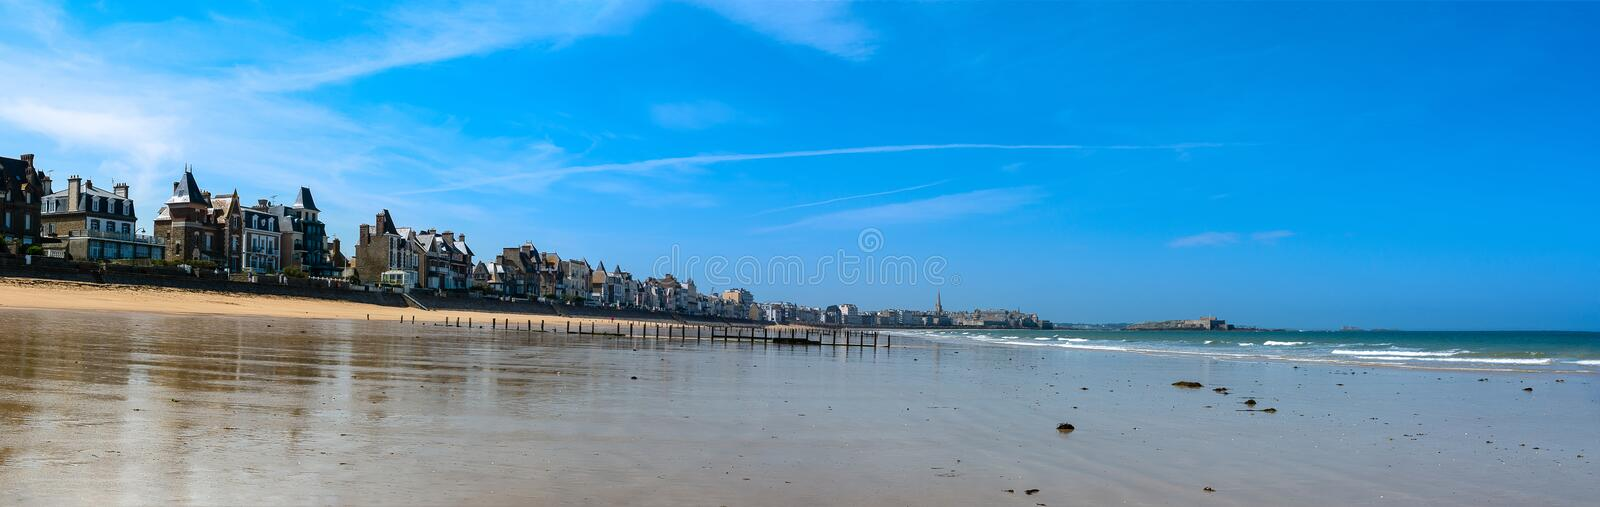 Panorama on the seafront of Saint Malo in Brittany, France royalty free stock photos